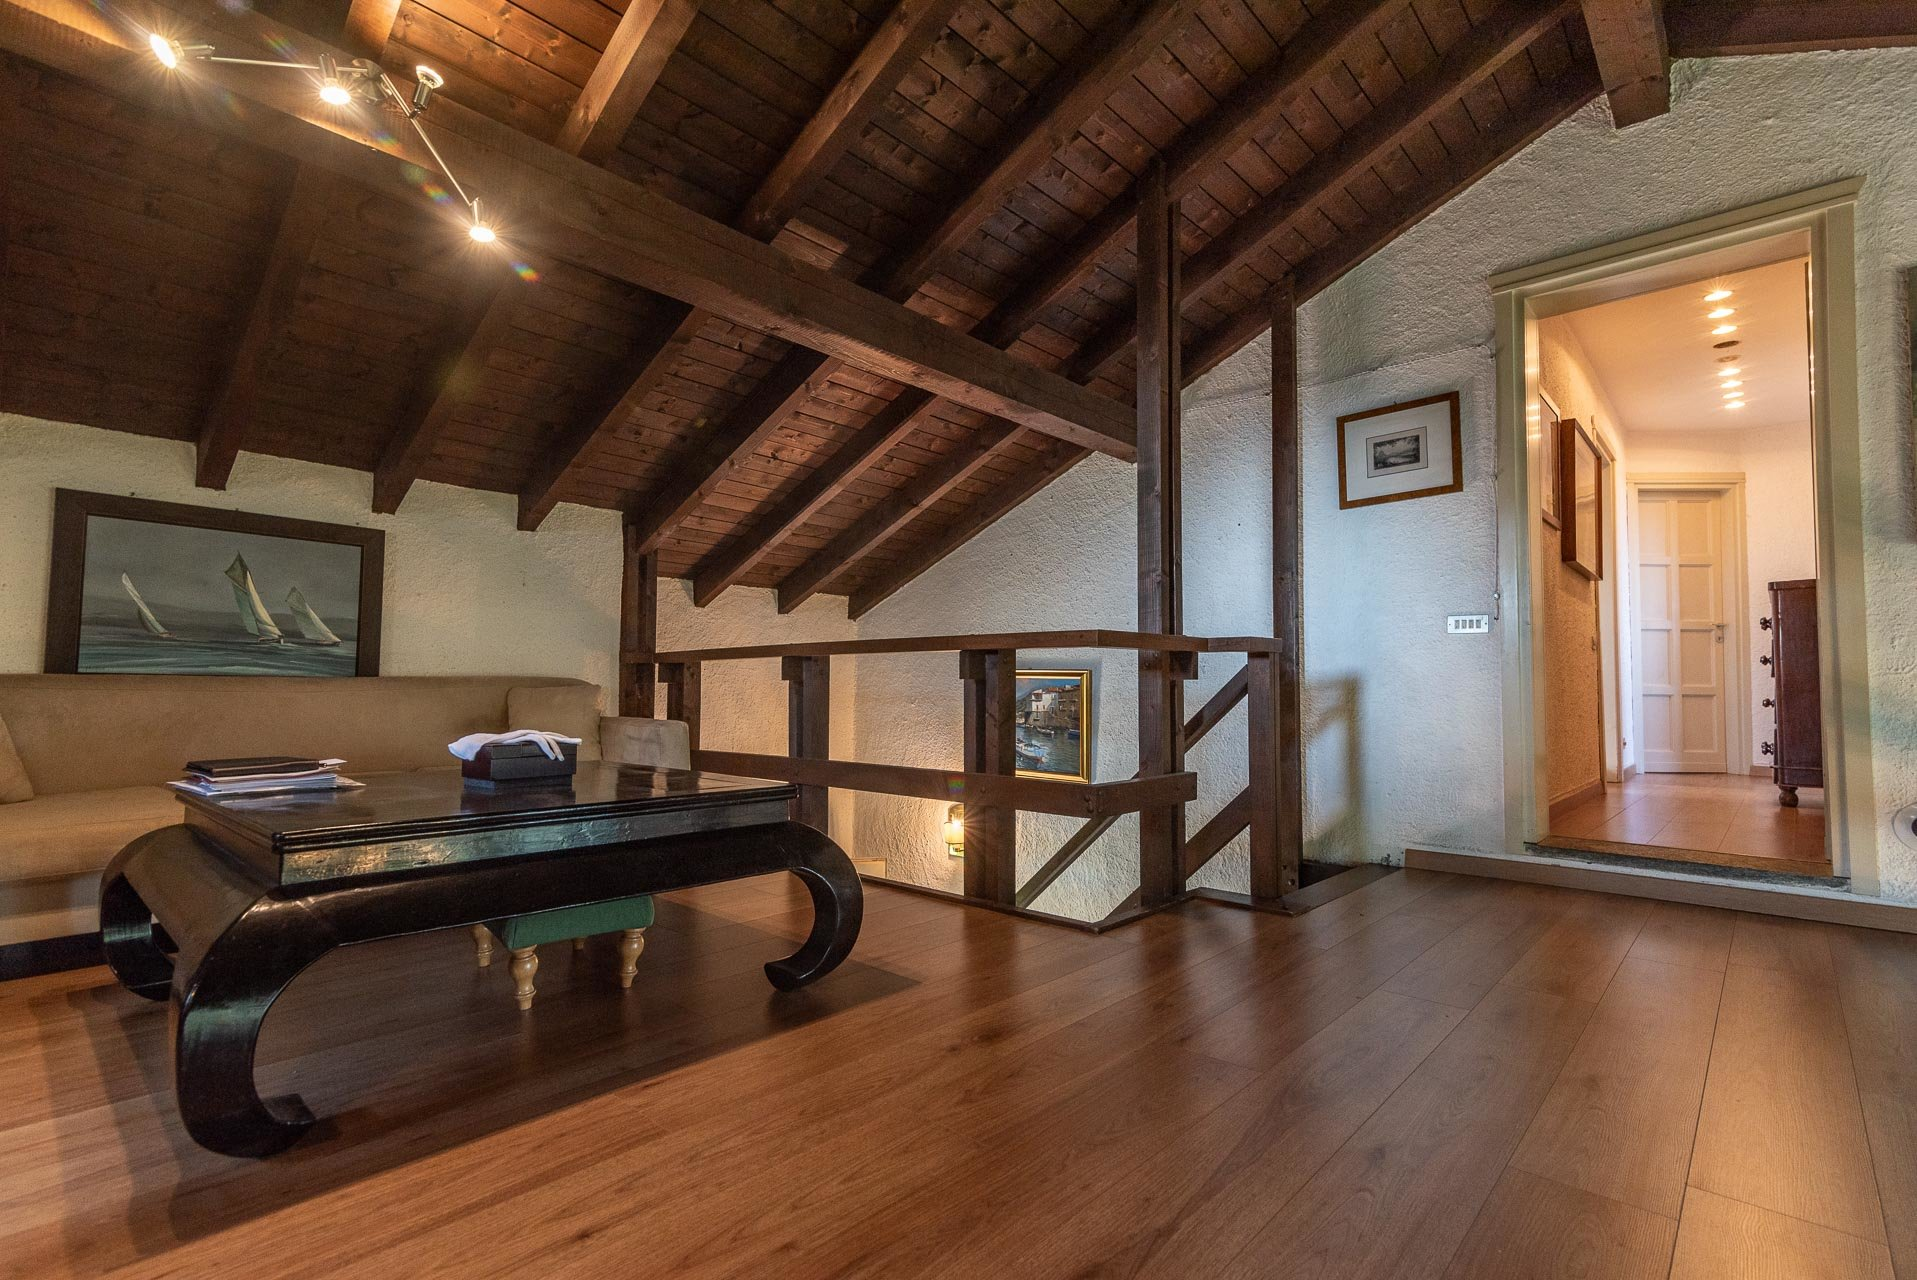 Villa with swimming pool for sale in Gignese - hobby room